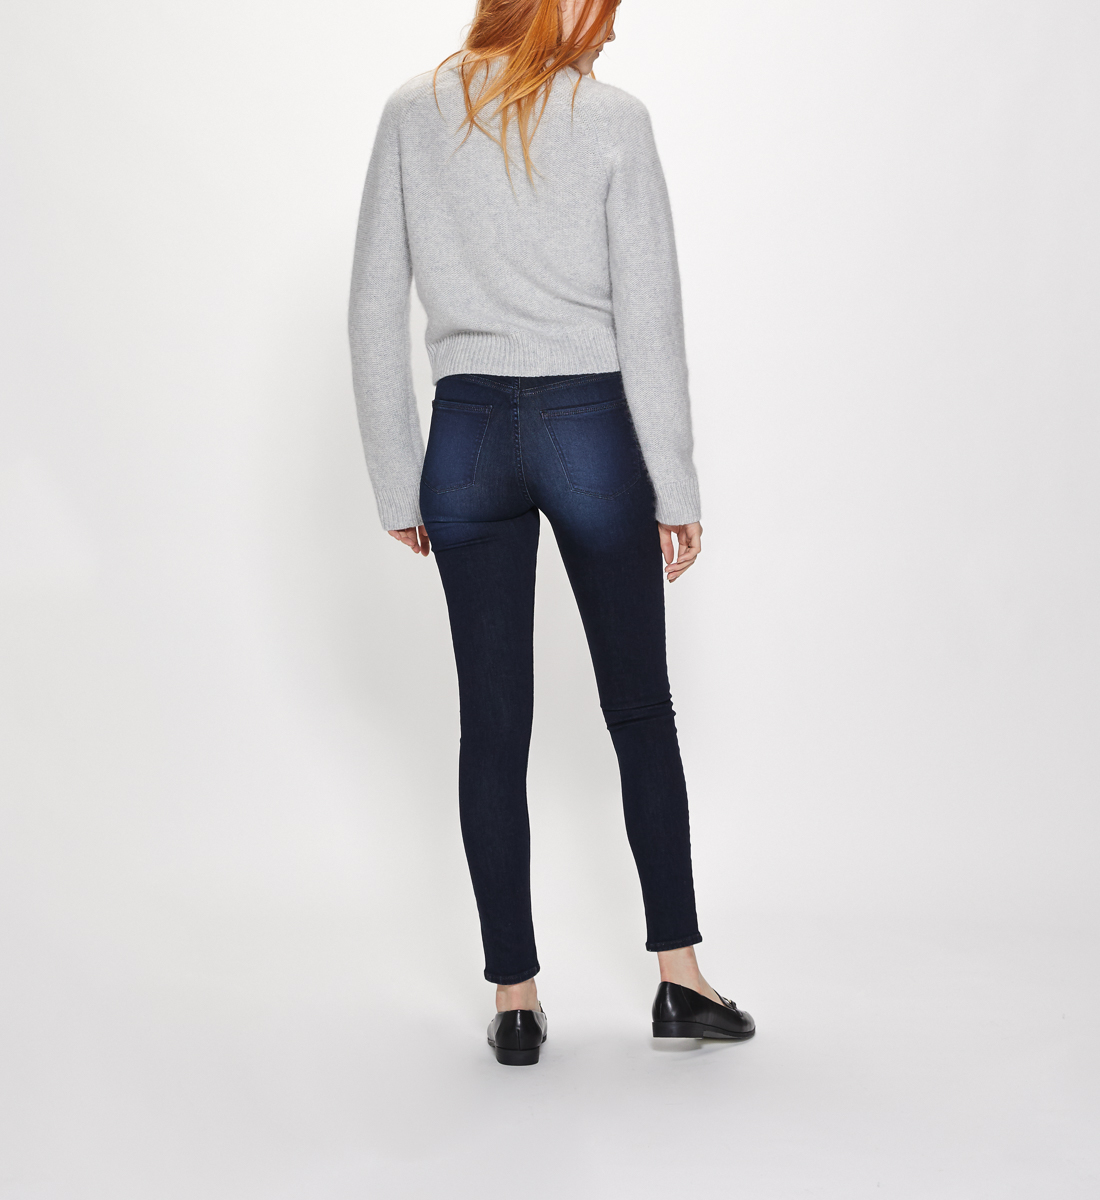 Mazy High Rise Skinny Leg Jeans Final Sale Alt Image 3